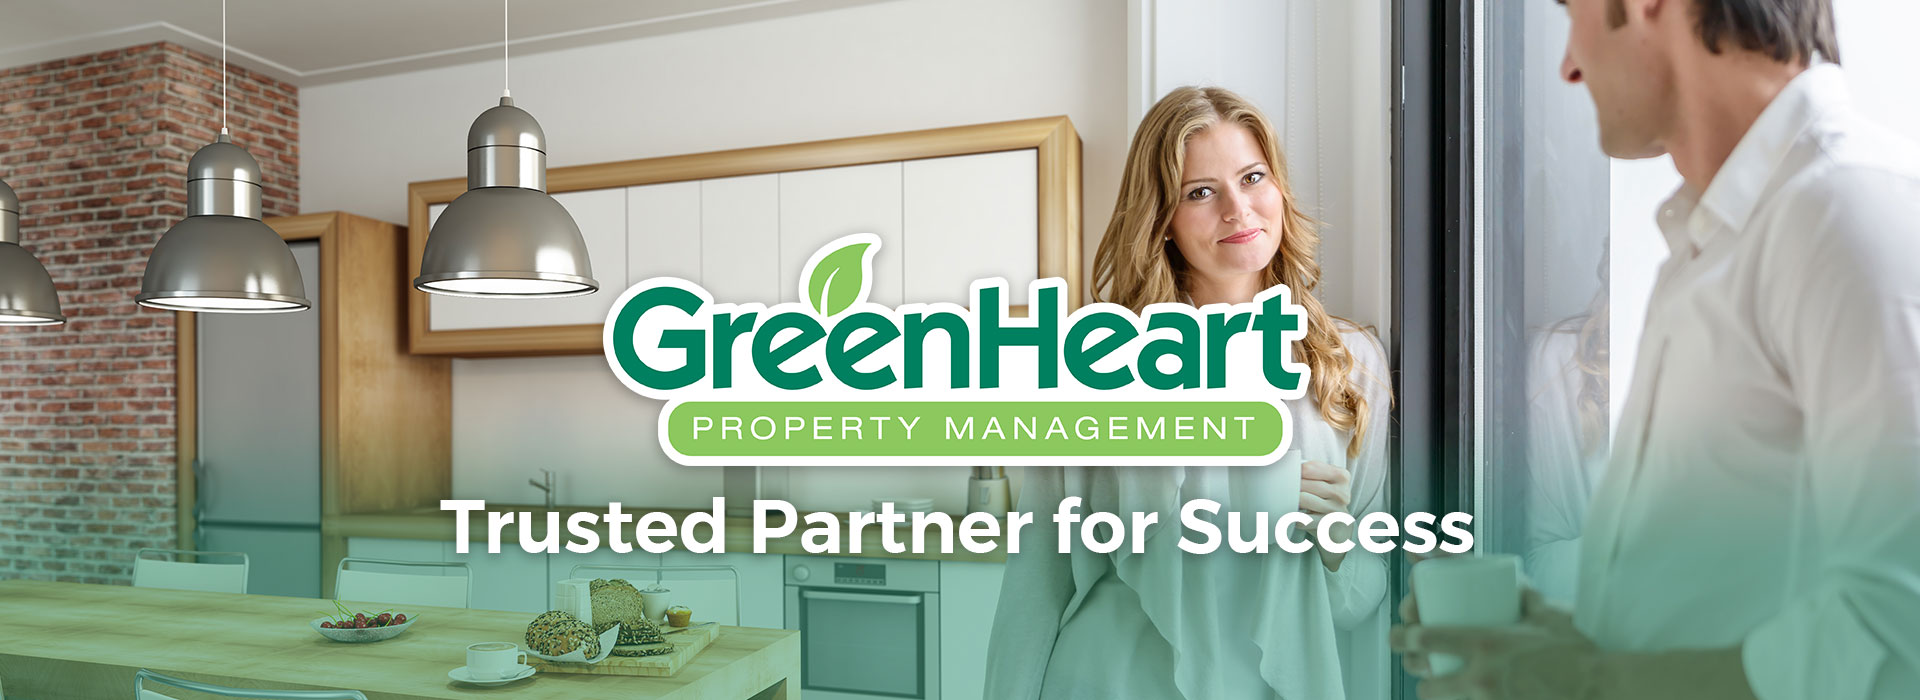 GreenHeart Property Management - Trusted Partner for Success